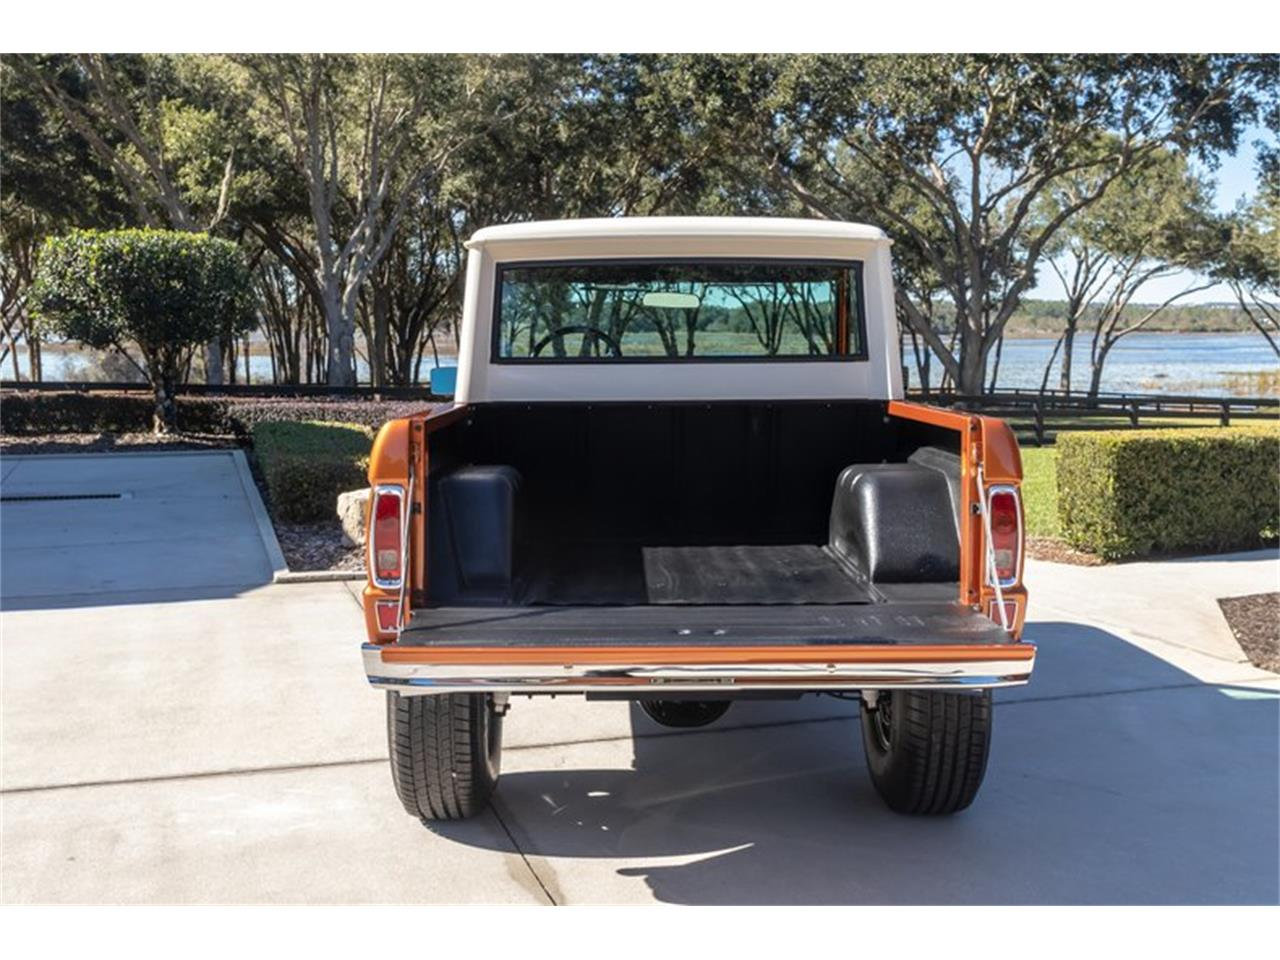 Large Picture of 1976 Ford Bronco located in Greensboro North Carolina Auction Vehicle Offered by GAA Classic Cars Auctions - Q8U3